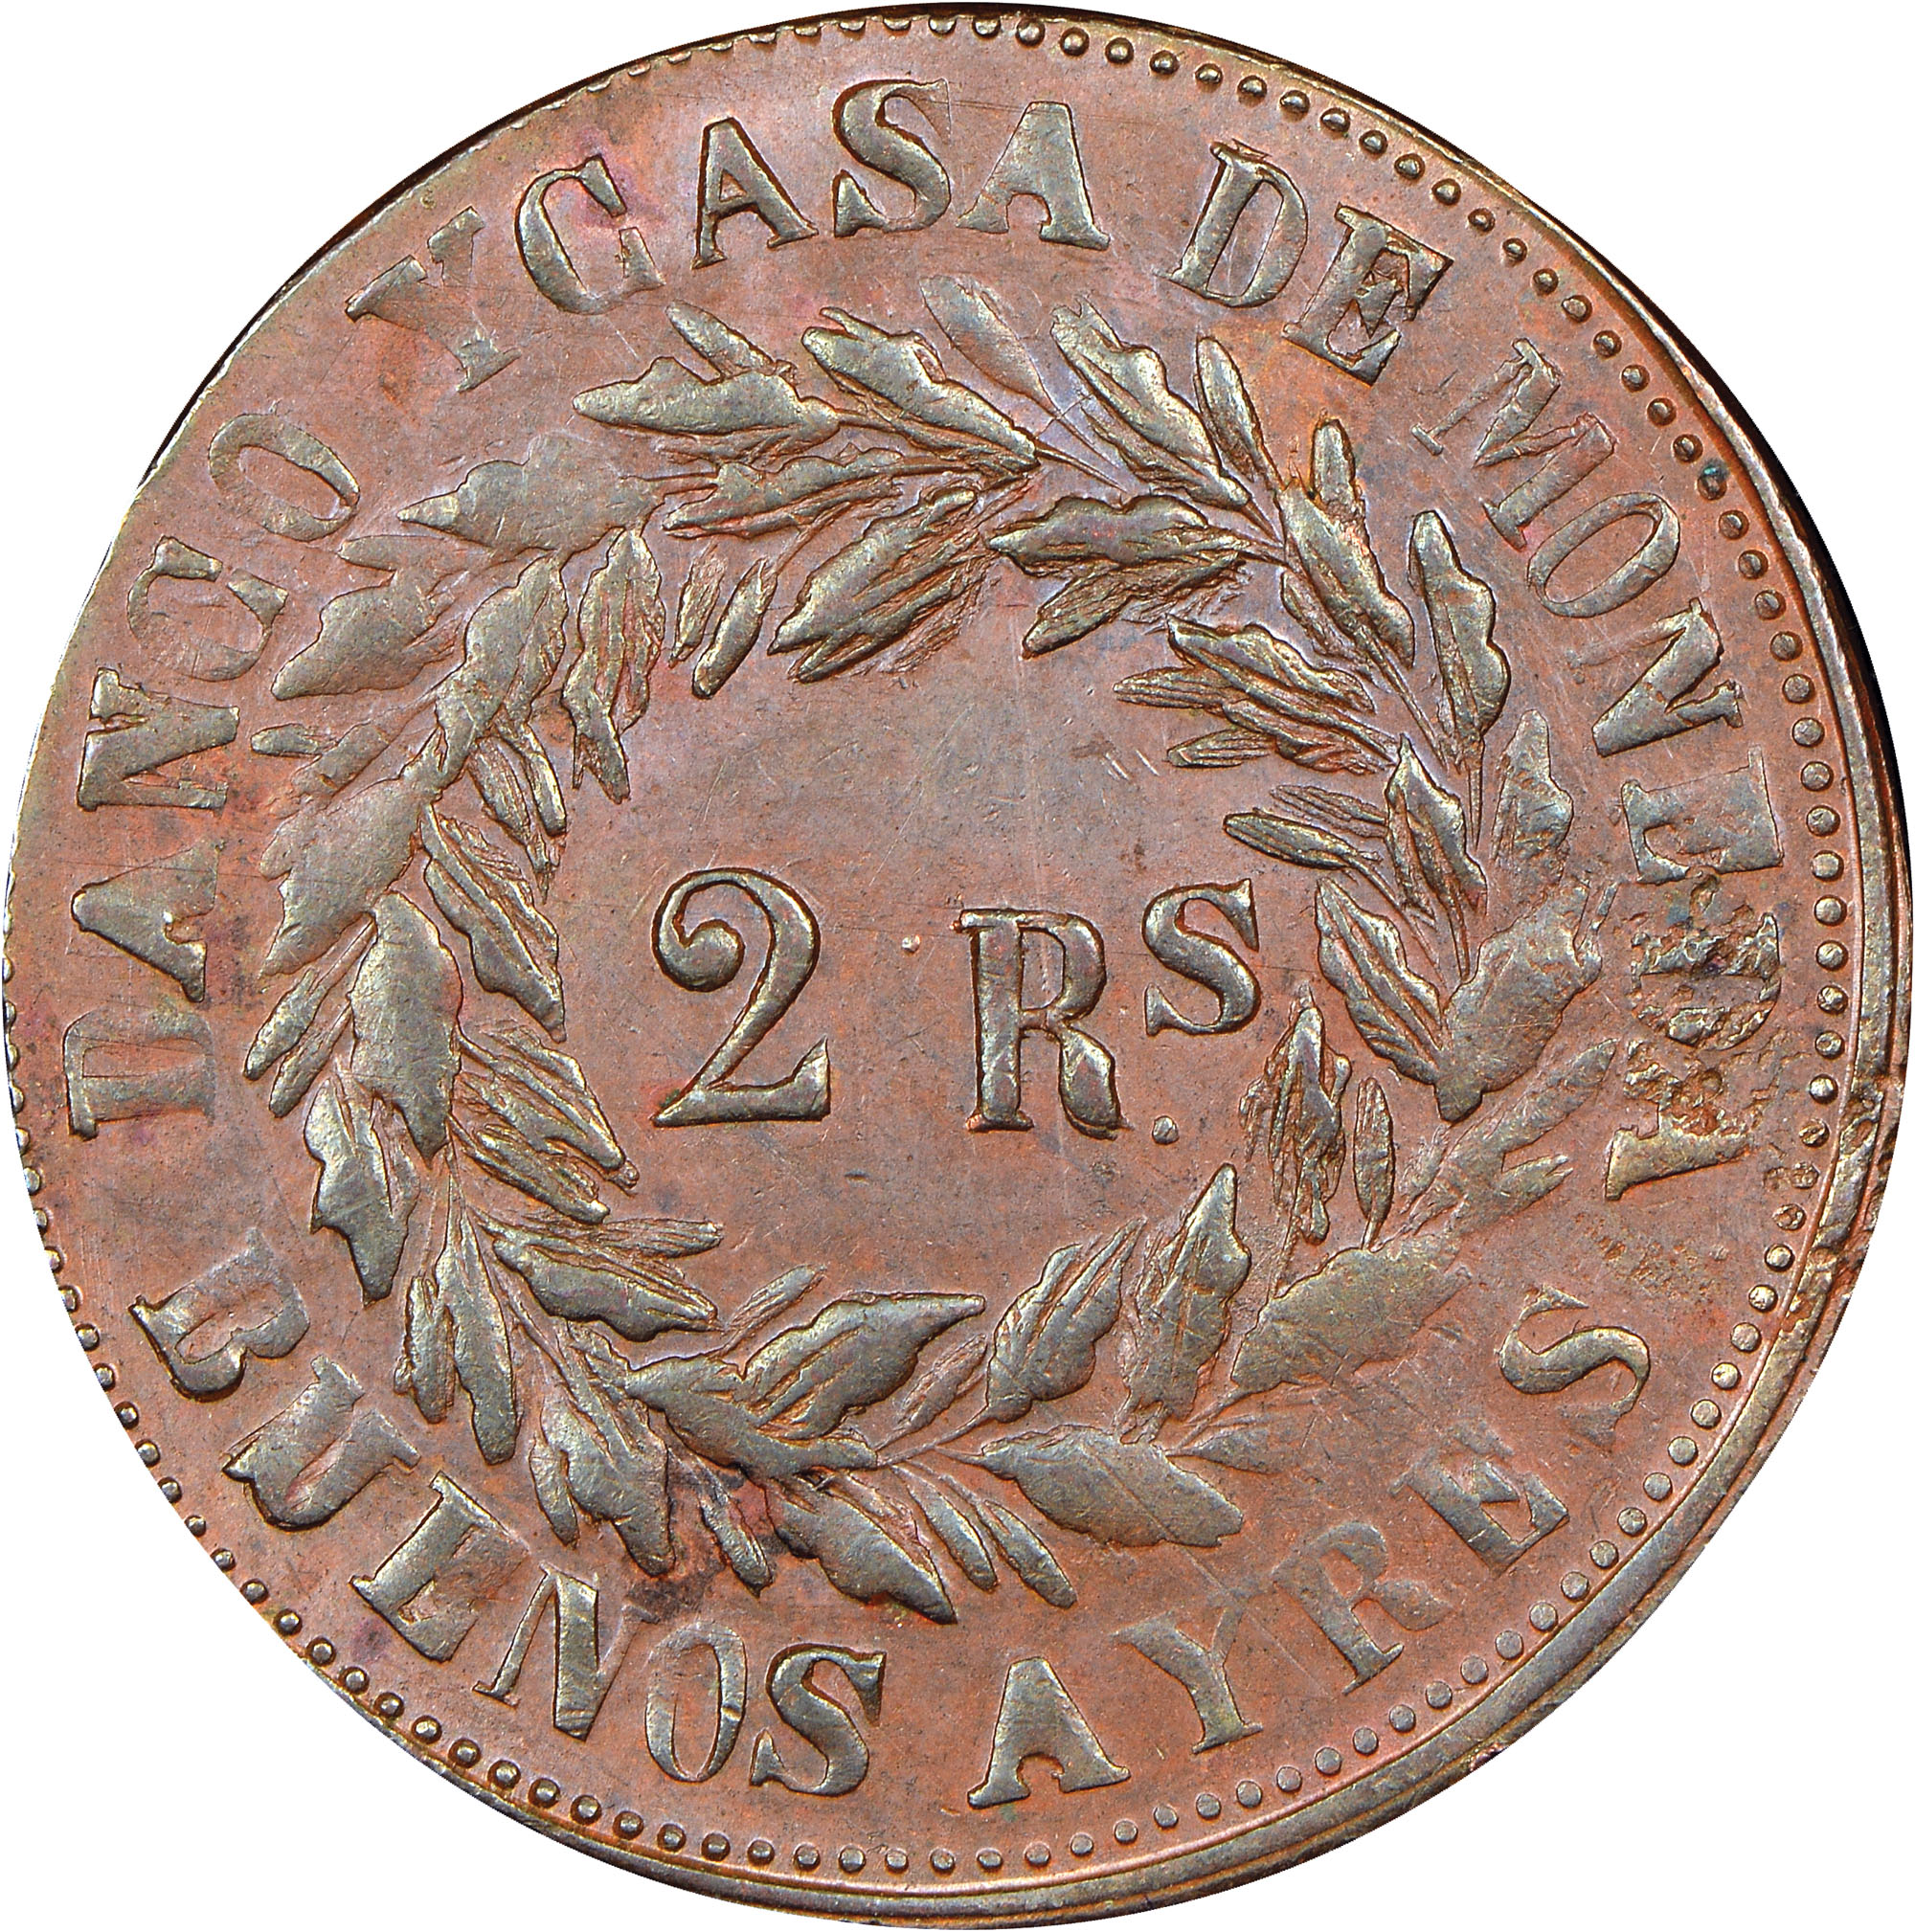 1860-1861 Argentina BUENOS AIRES 2 Reales reverse